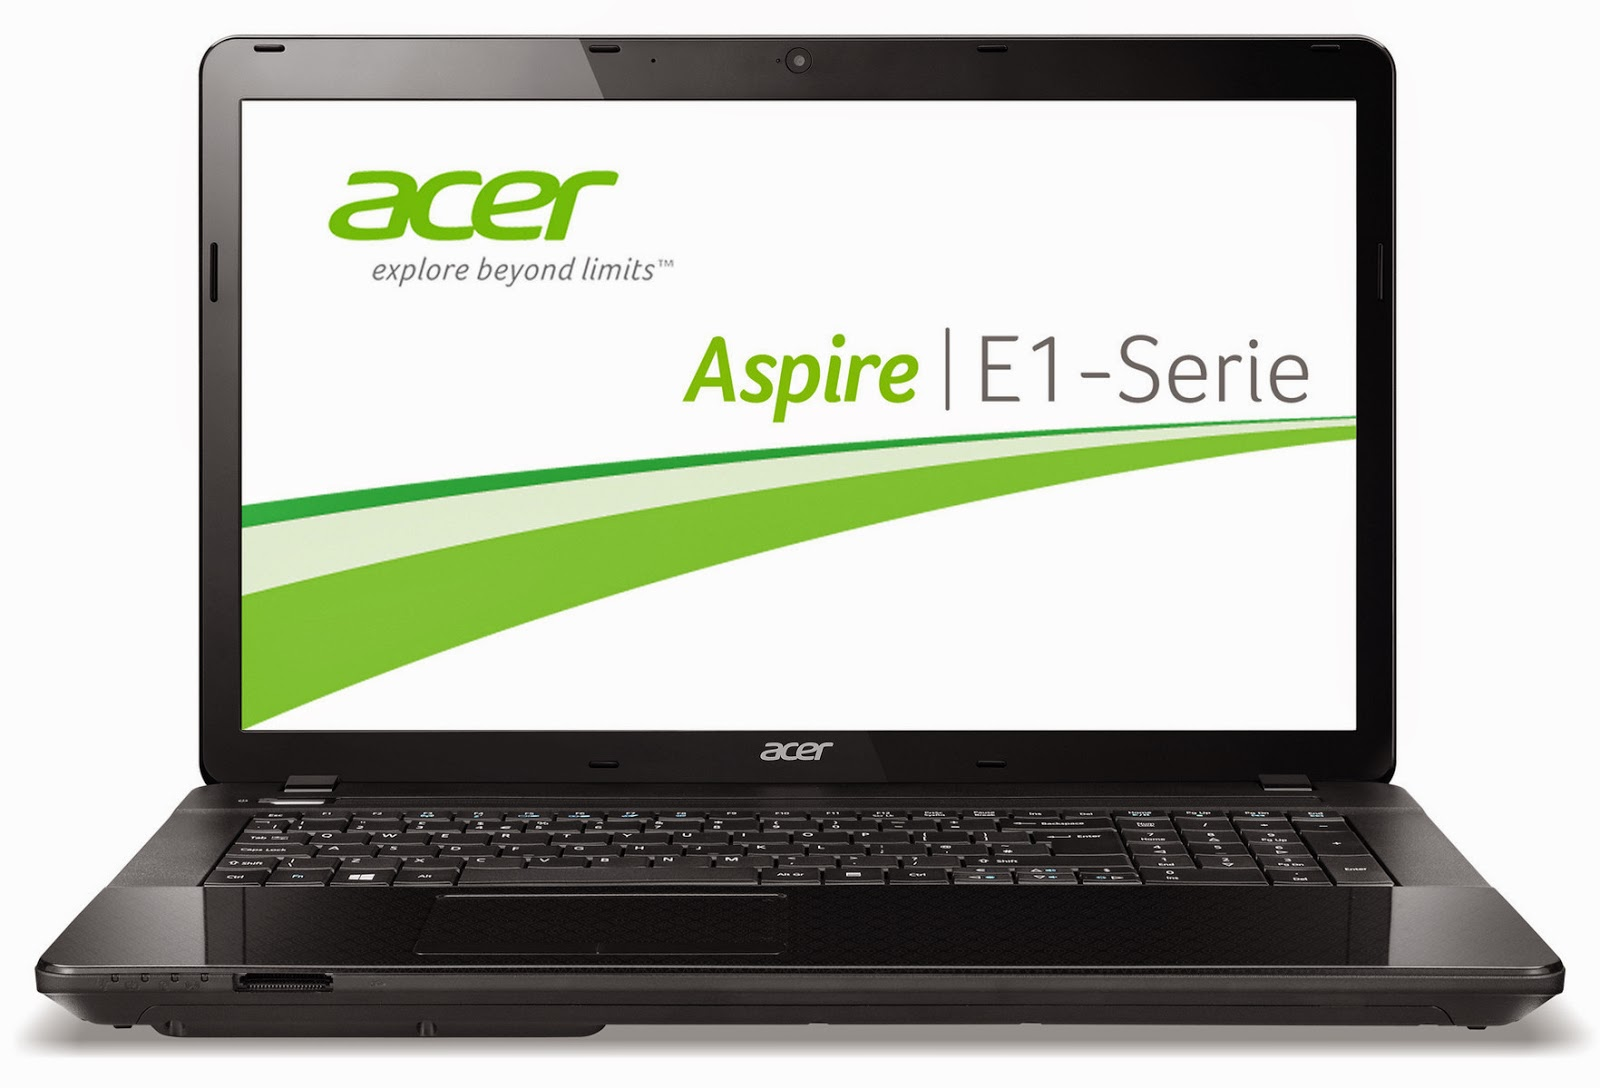 ACER ASPIRE E1-771G BROADCOM BLUETOOTH DRIVERS WINDOWS 7